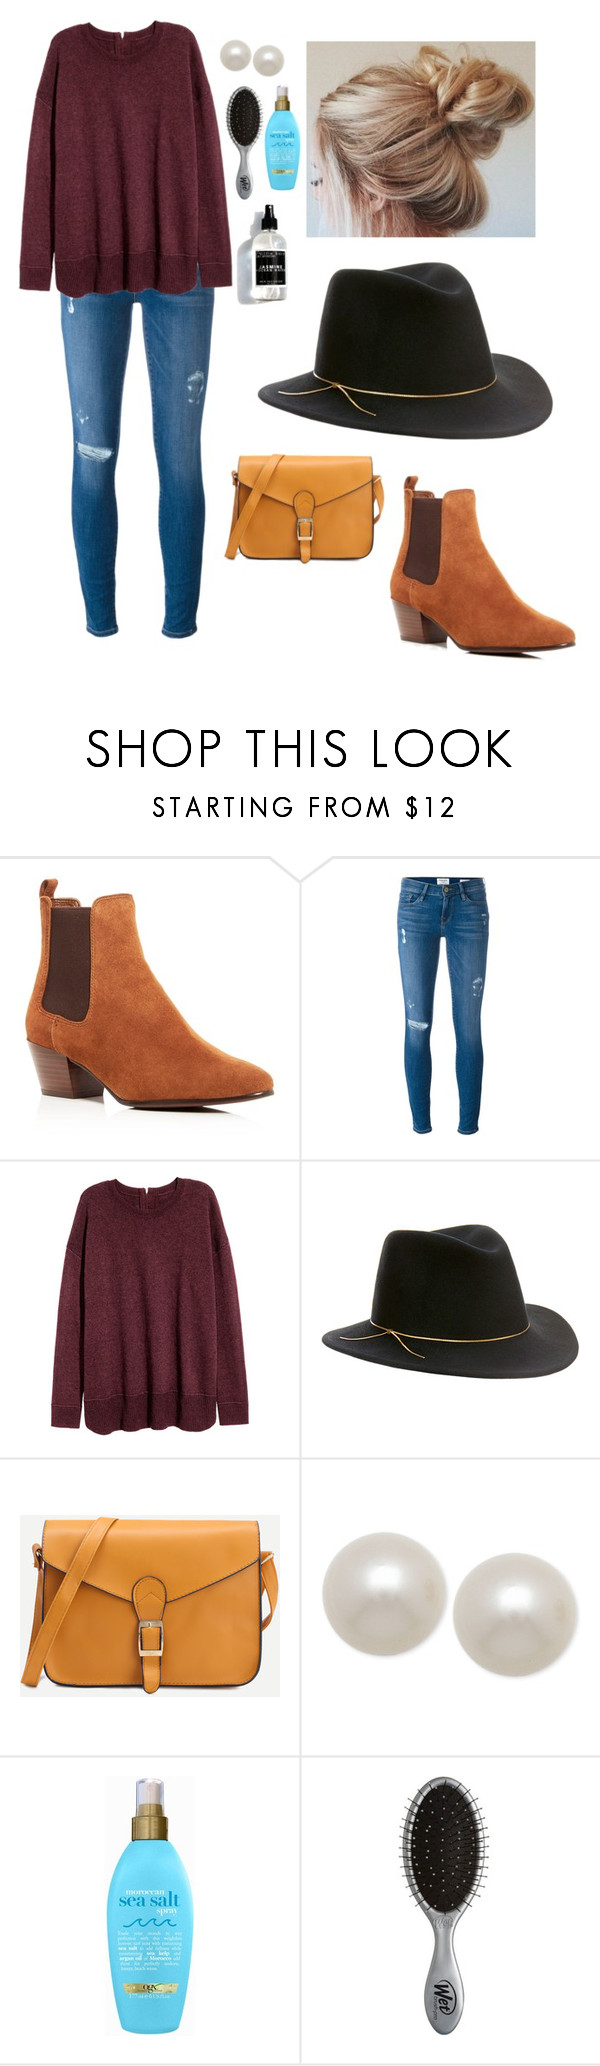 """Untitled #62"" by kikibrinson02 on Polyvore featuring Sam Edelman, Frame Denim, Eugenia Kim, Honora, Organix and The Wet Brush"